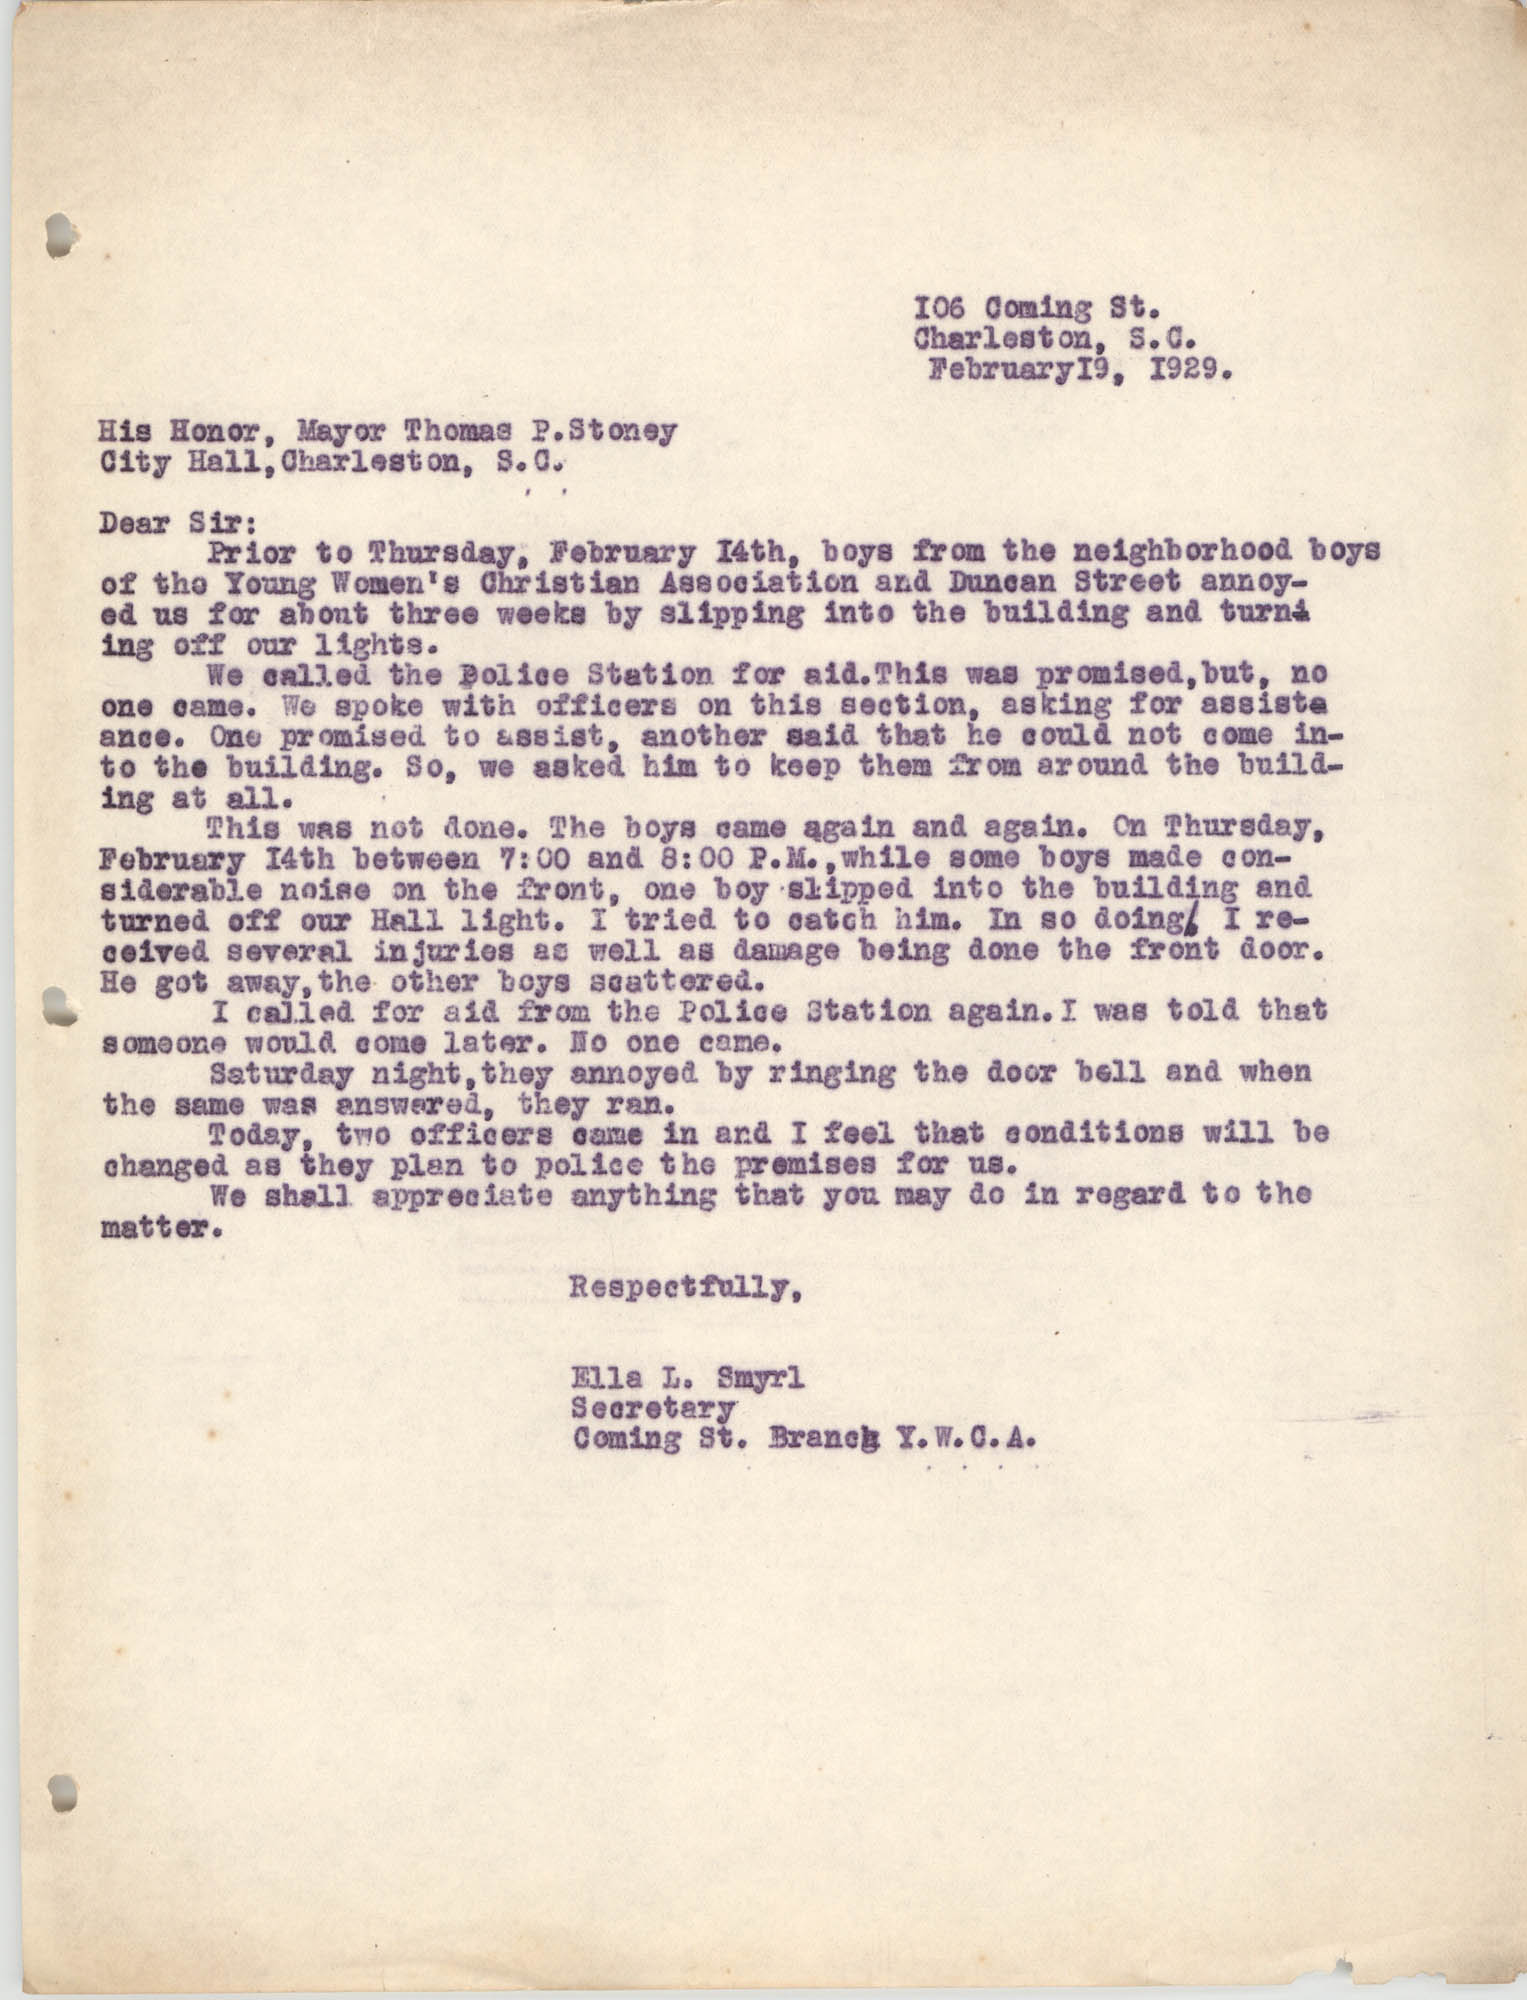 Letter from Ella L. Smyrl to Thomas Stoney, February 19, 1929